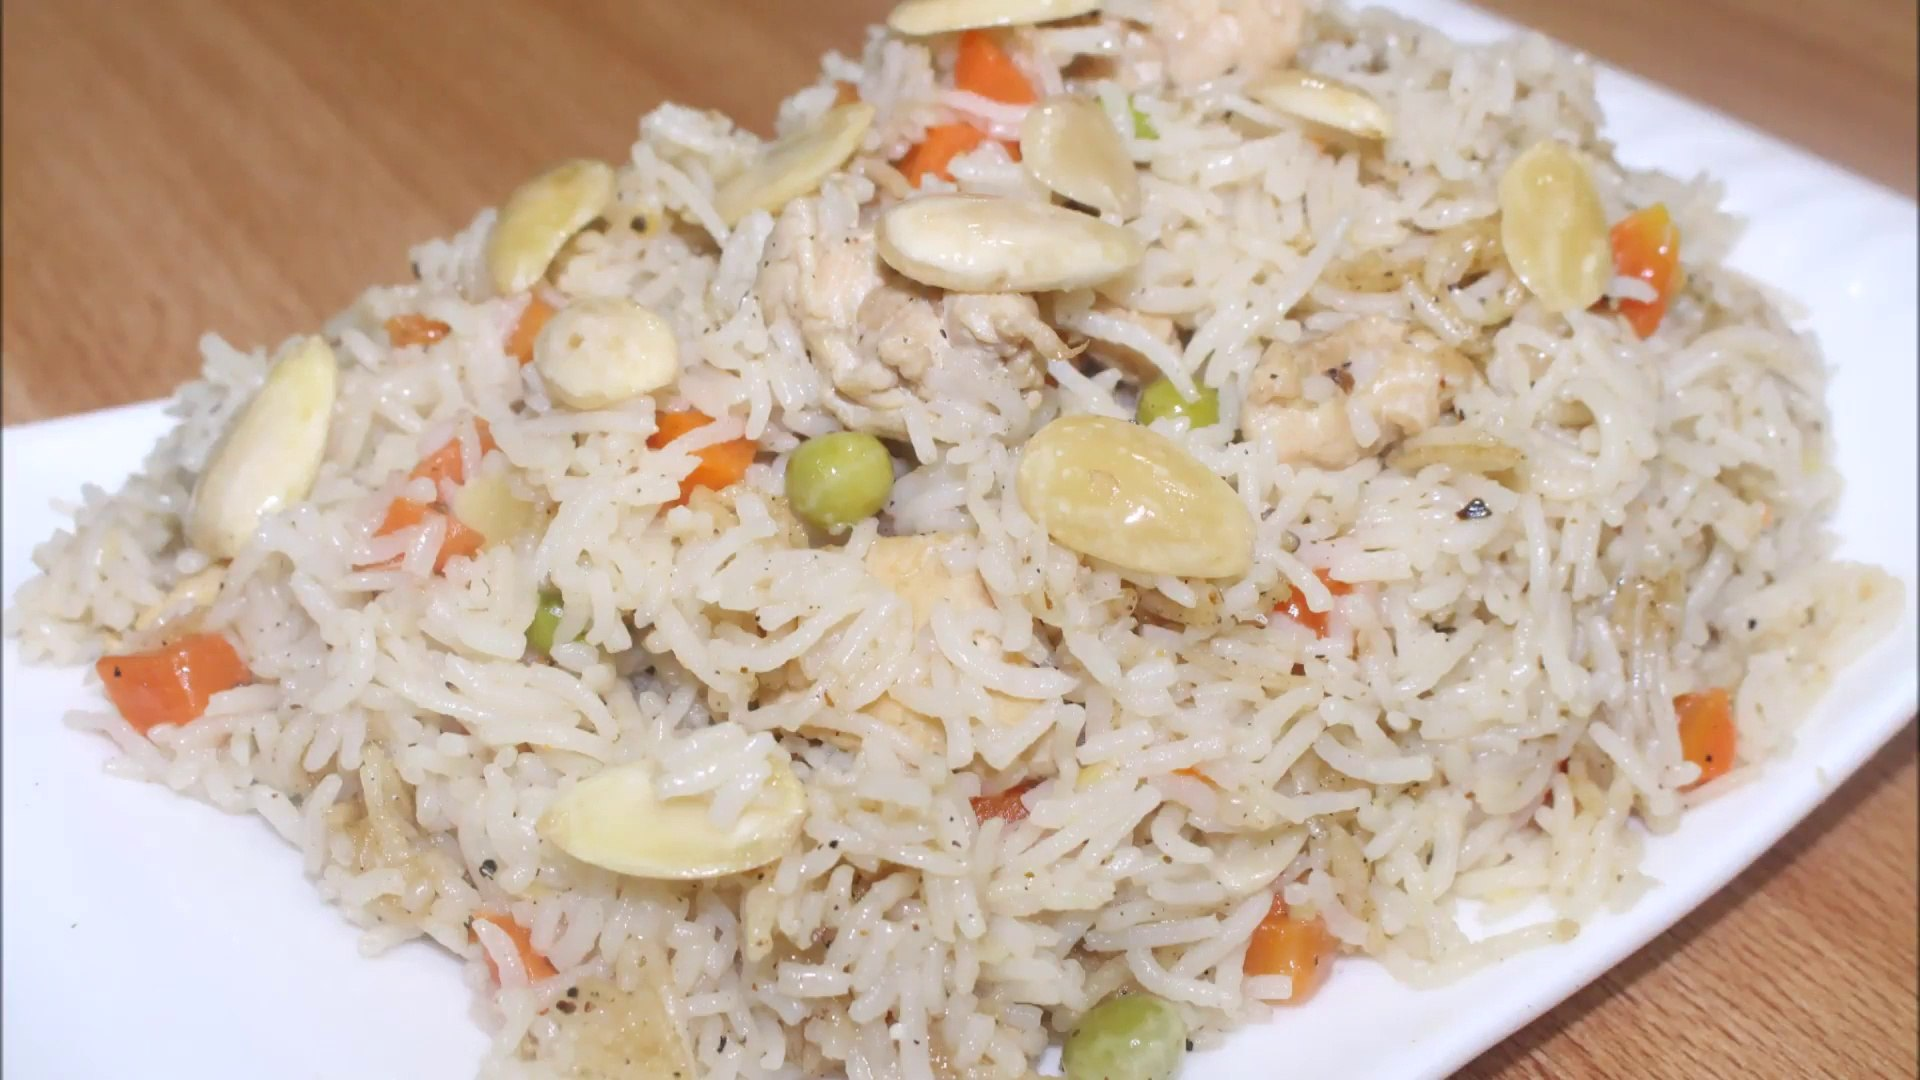 Garlic Rice Recipe - Delicious Almond Chicken Garlic Rice